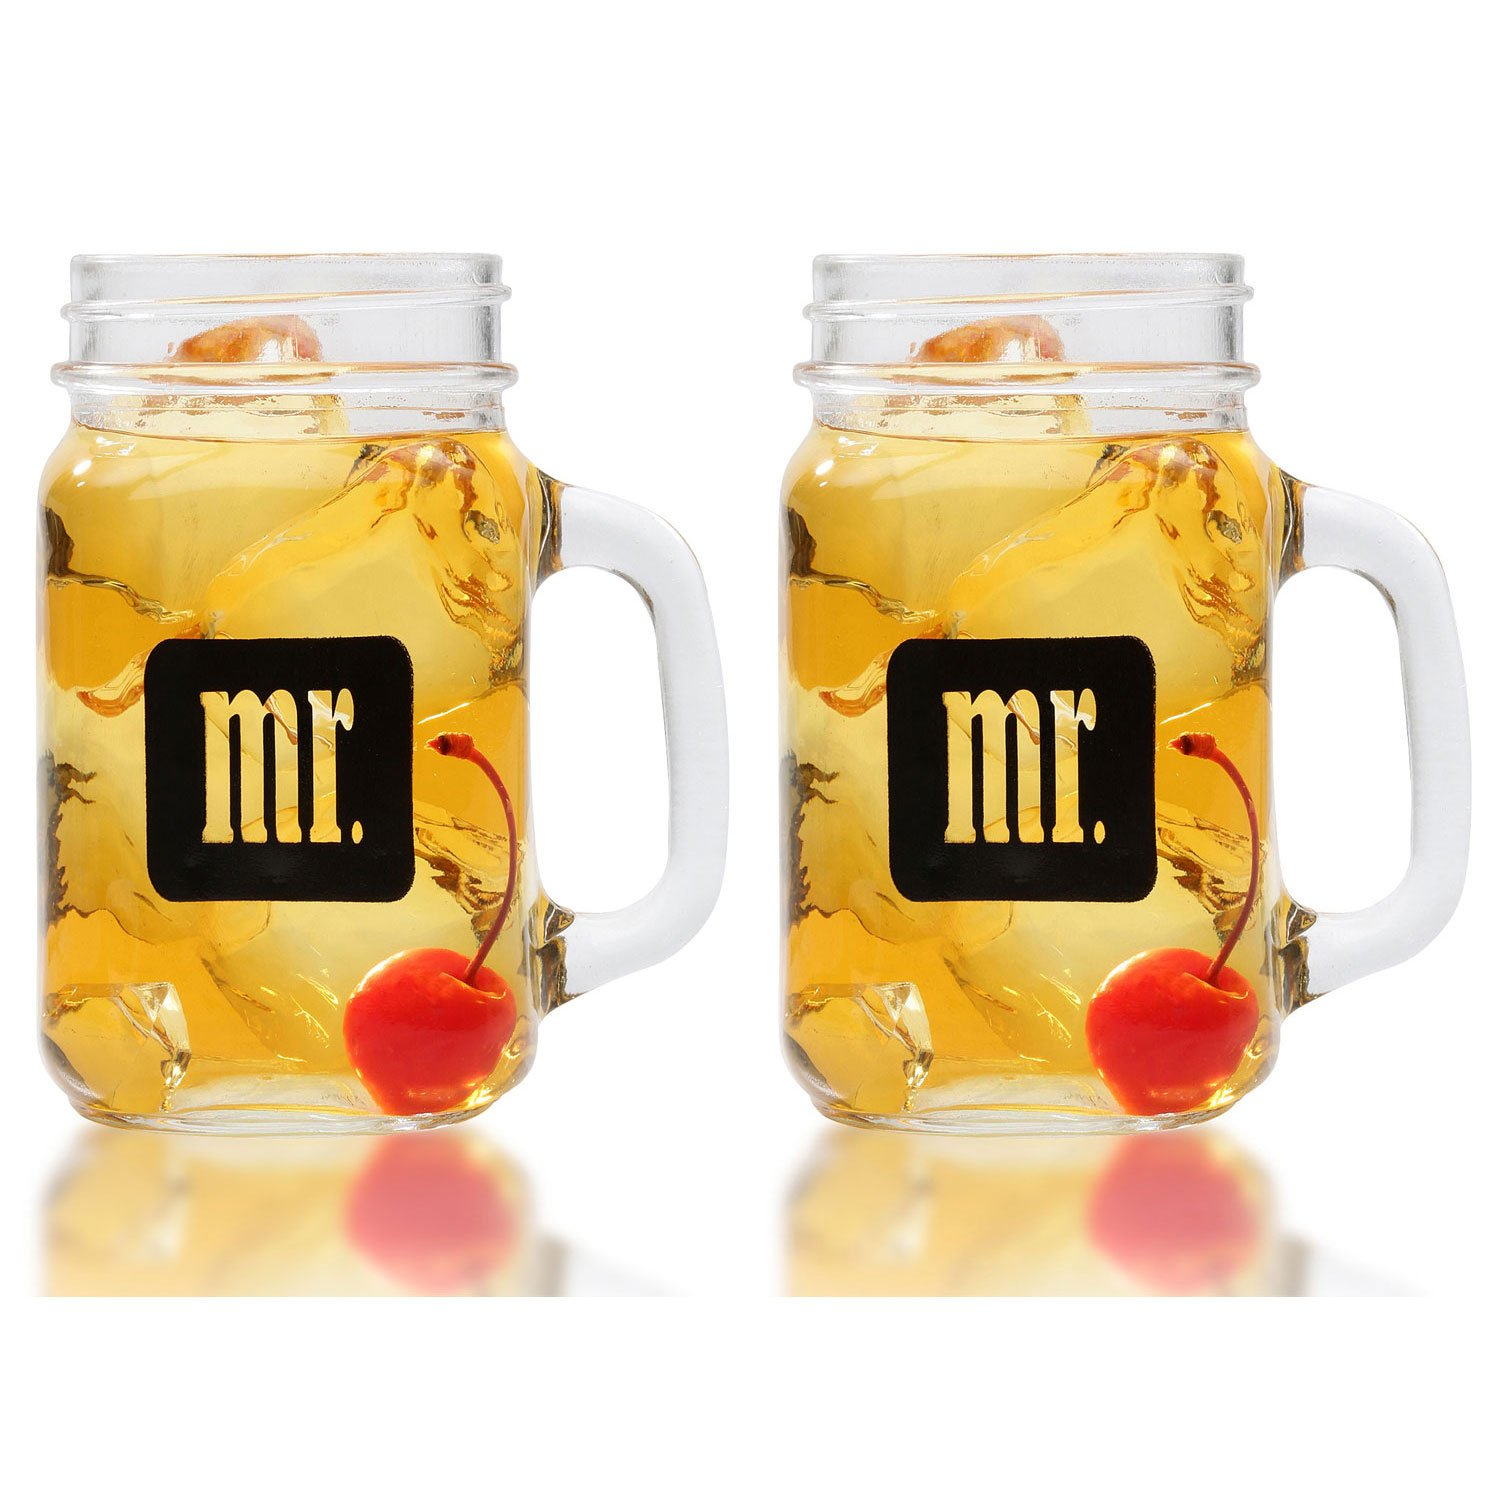 Mr. & Mr. Gay Couple Mason Jars With Gift Box - Same Sex Drinking Glasses - His and His - For Wedding, Engagement, Anniversary, House Warming, Host Gift, 16 ounce by Smart Tart Design